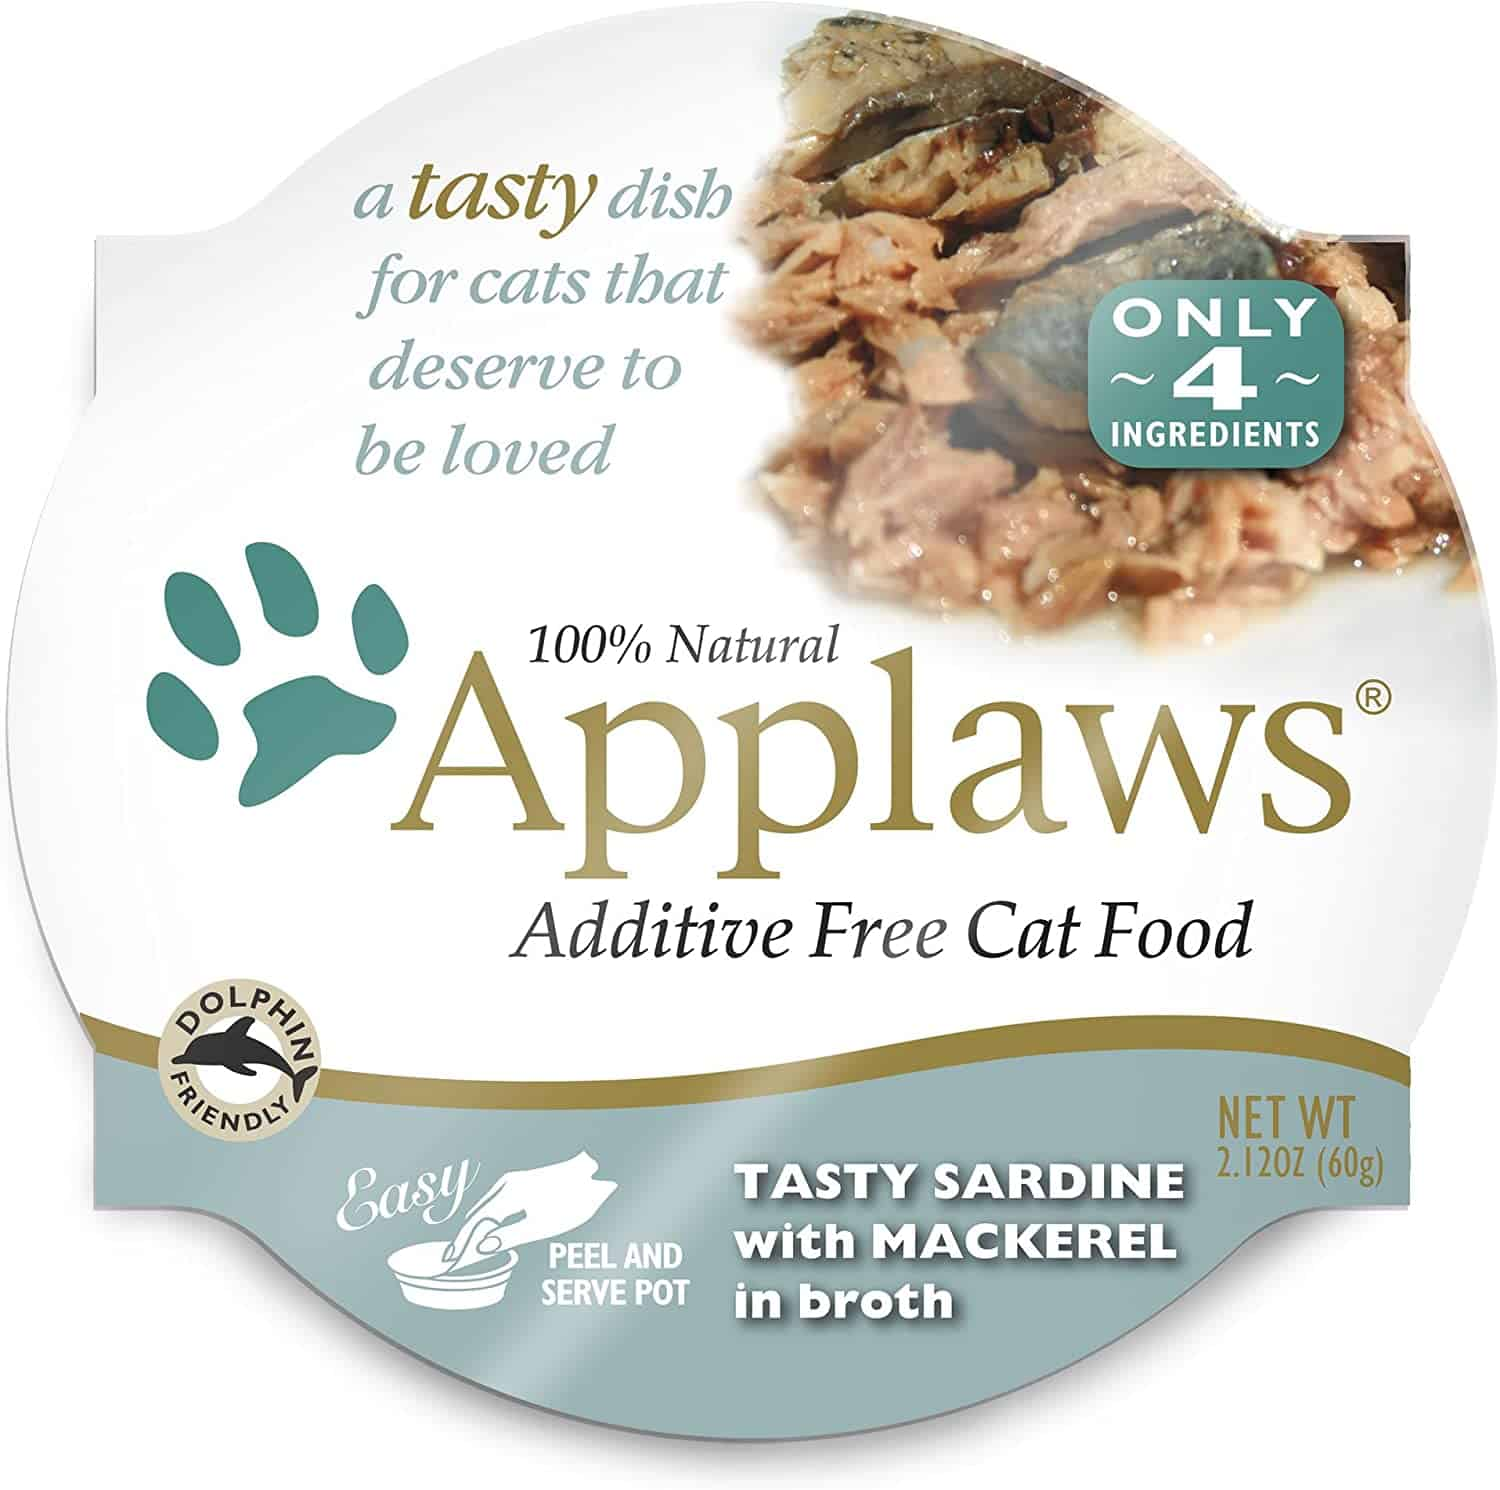 2020 Applaws Cat Food Reviews: Naturally Nutritious Cat Food 5